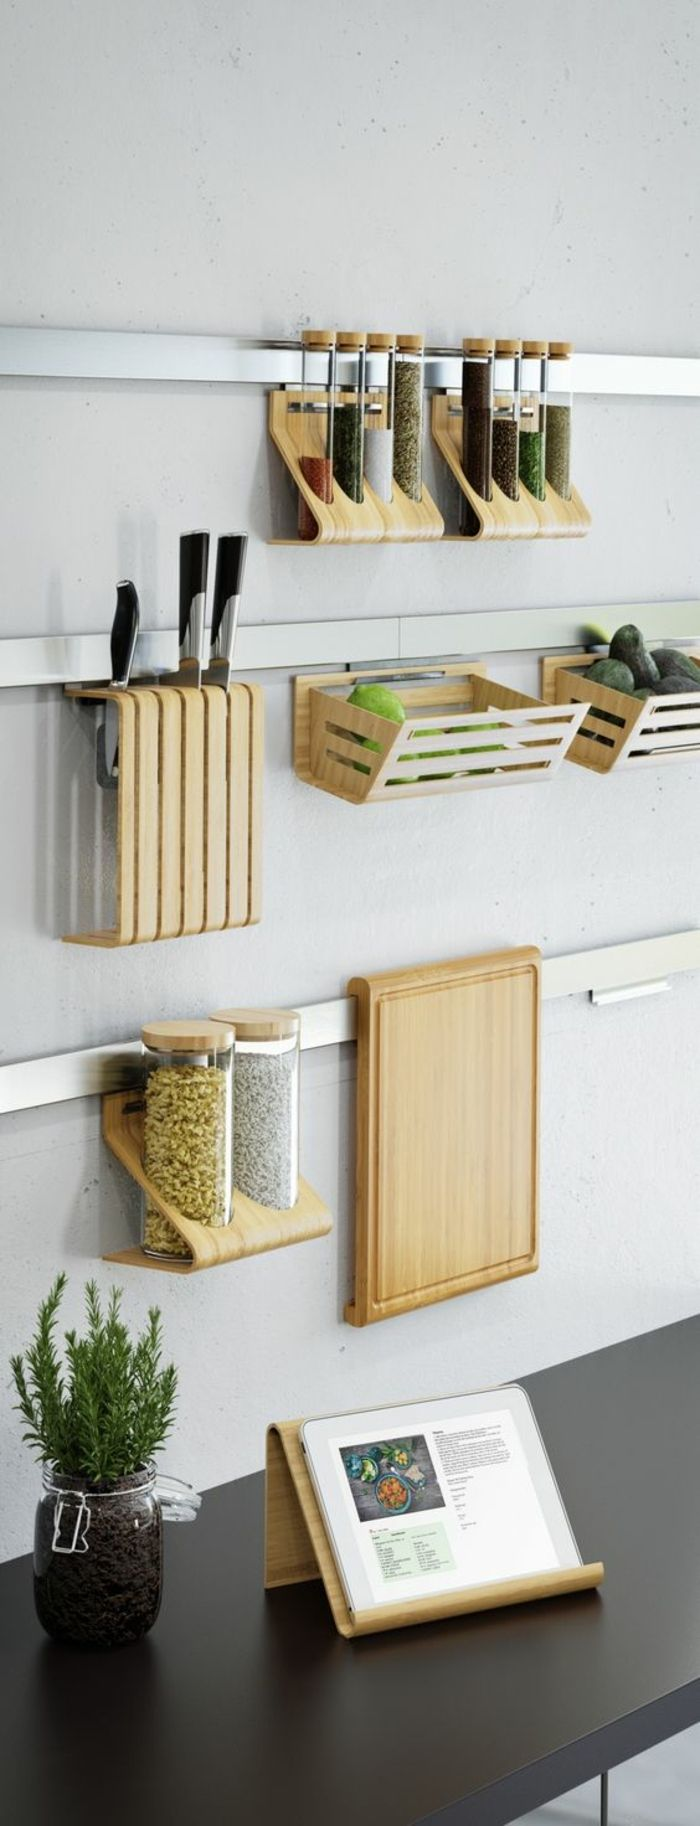 343 best Ikea hacks images on Pinterest